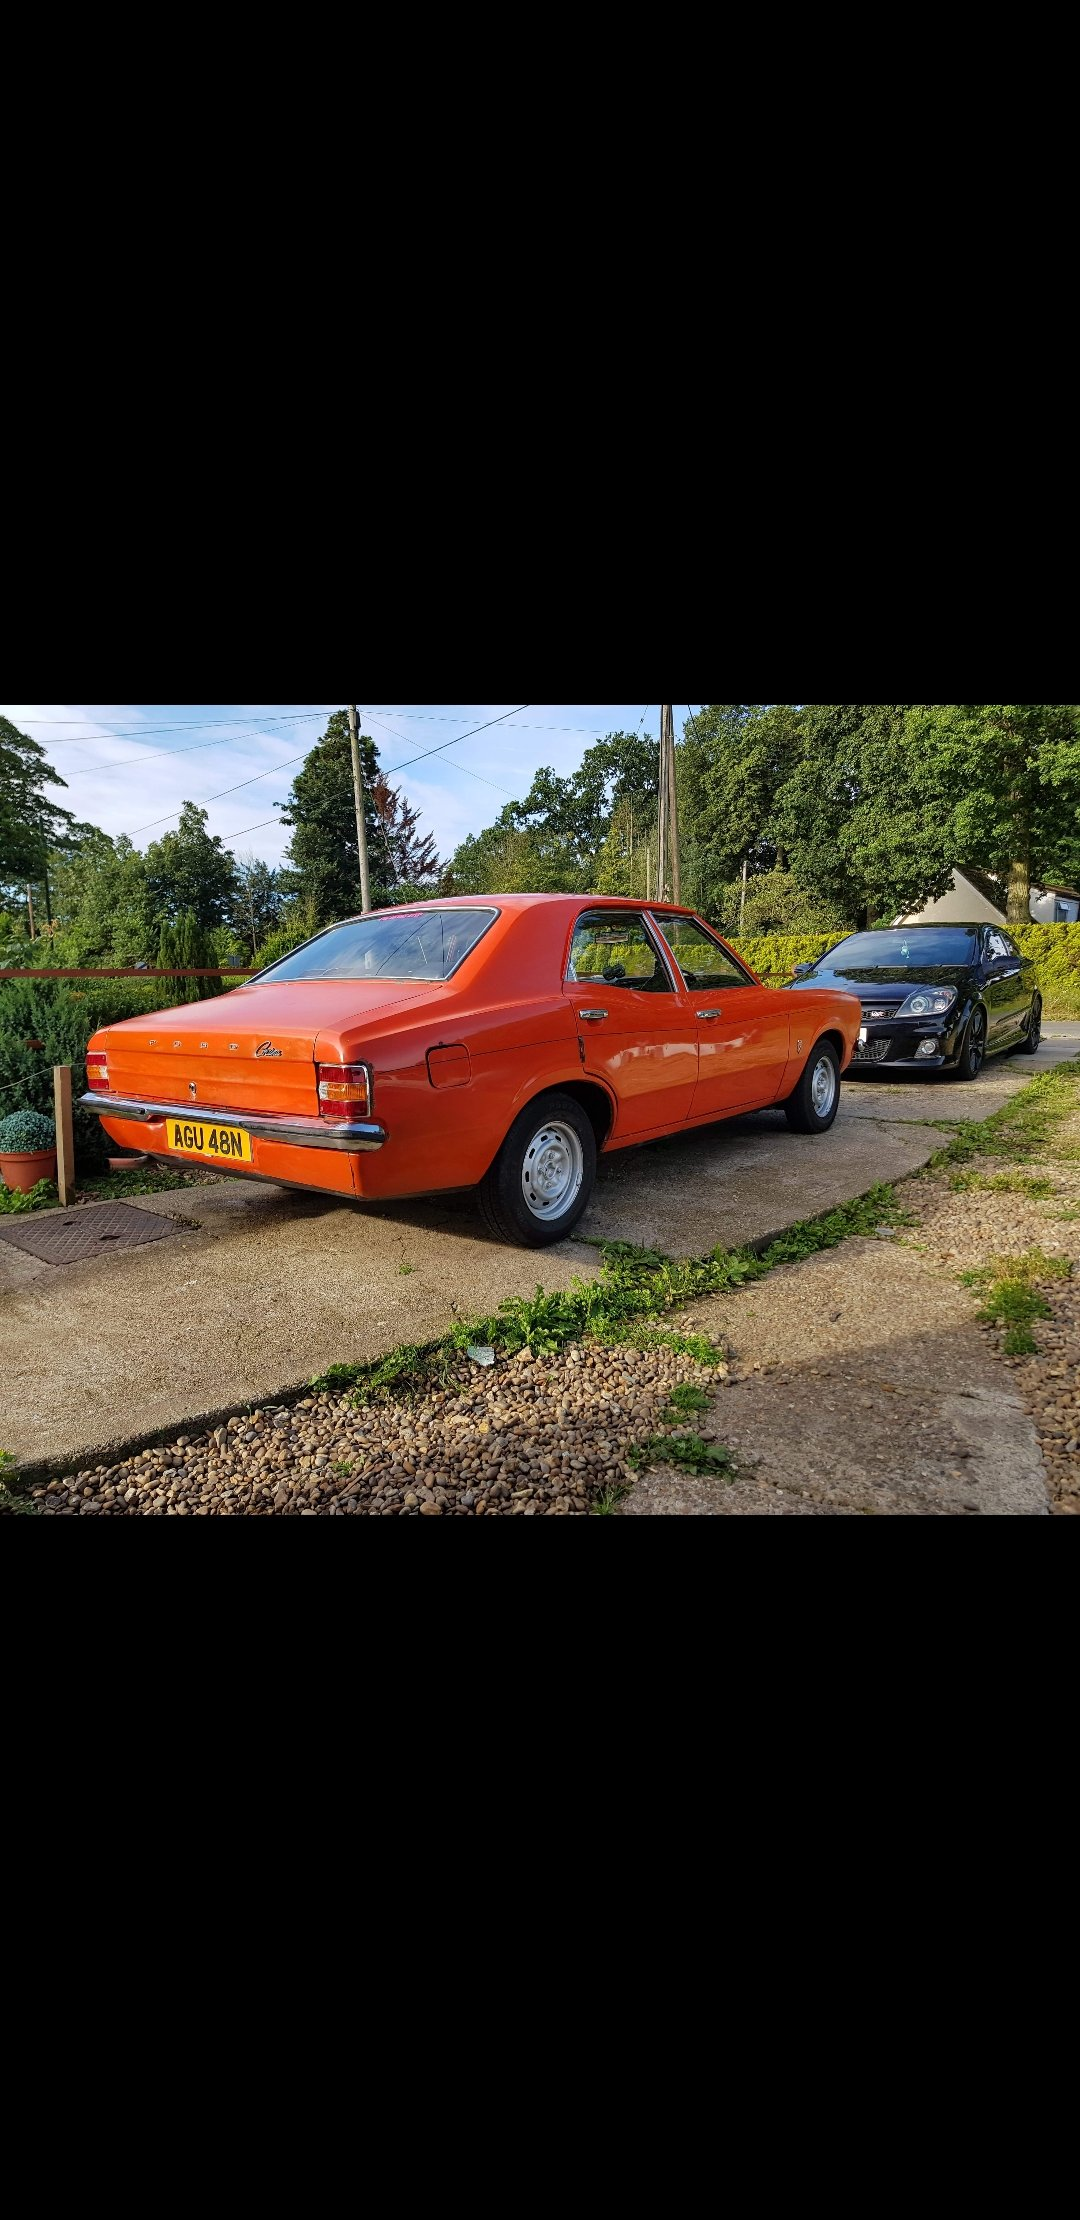 1974 Ford cortina For Sale (picture 3 of 5)